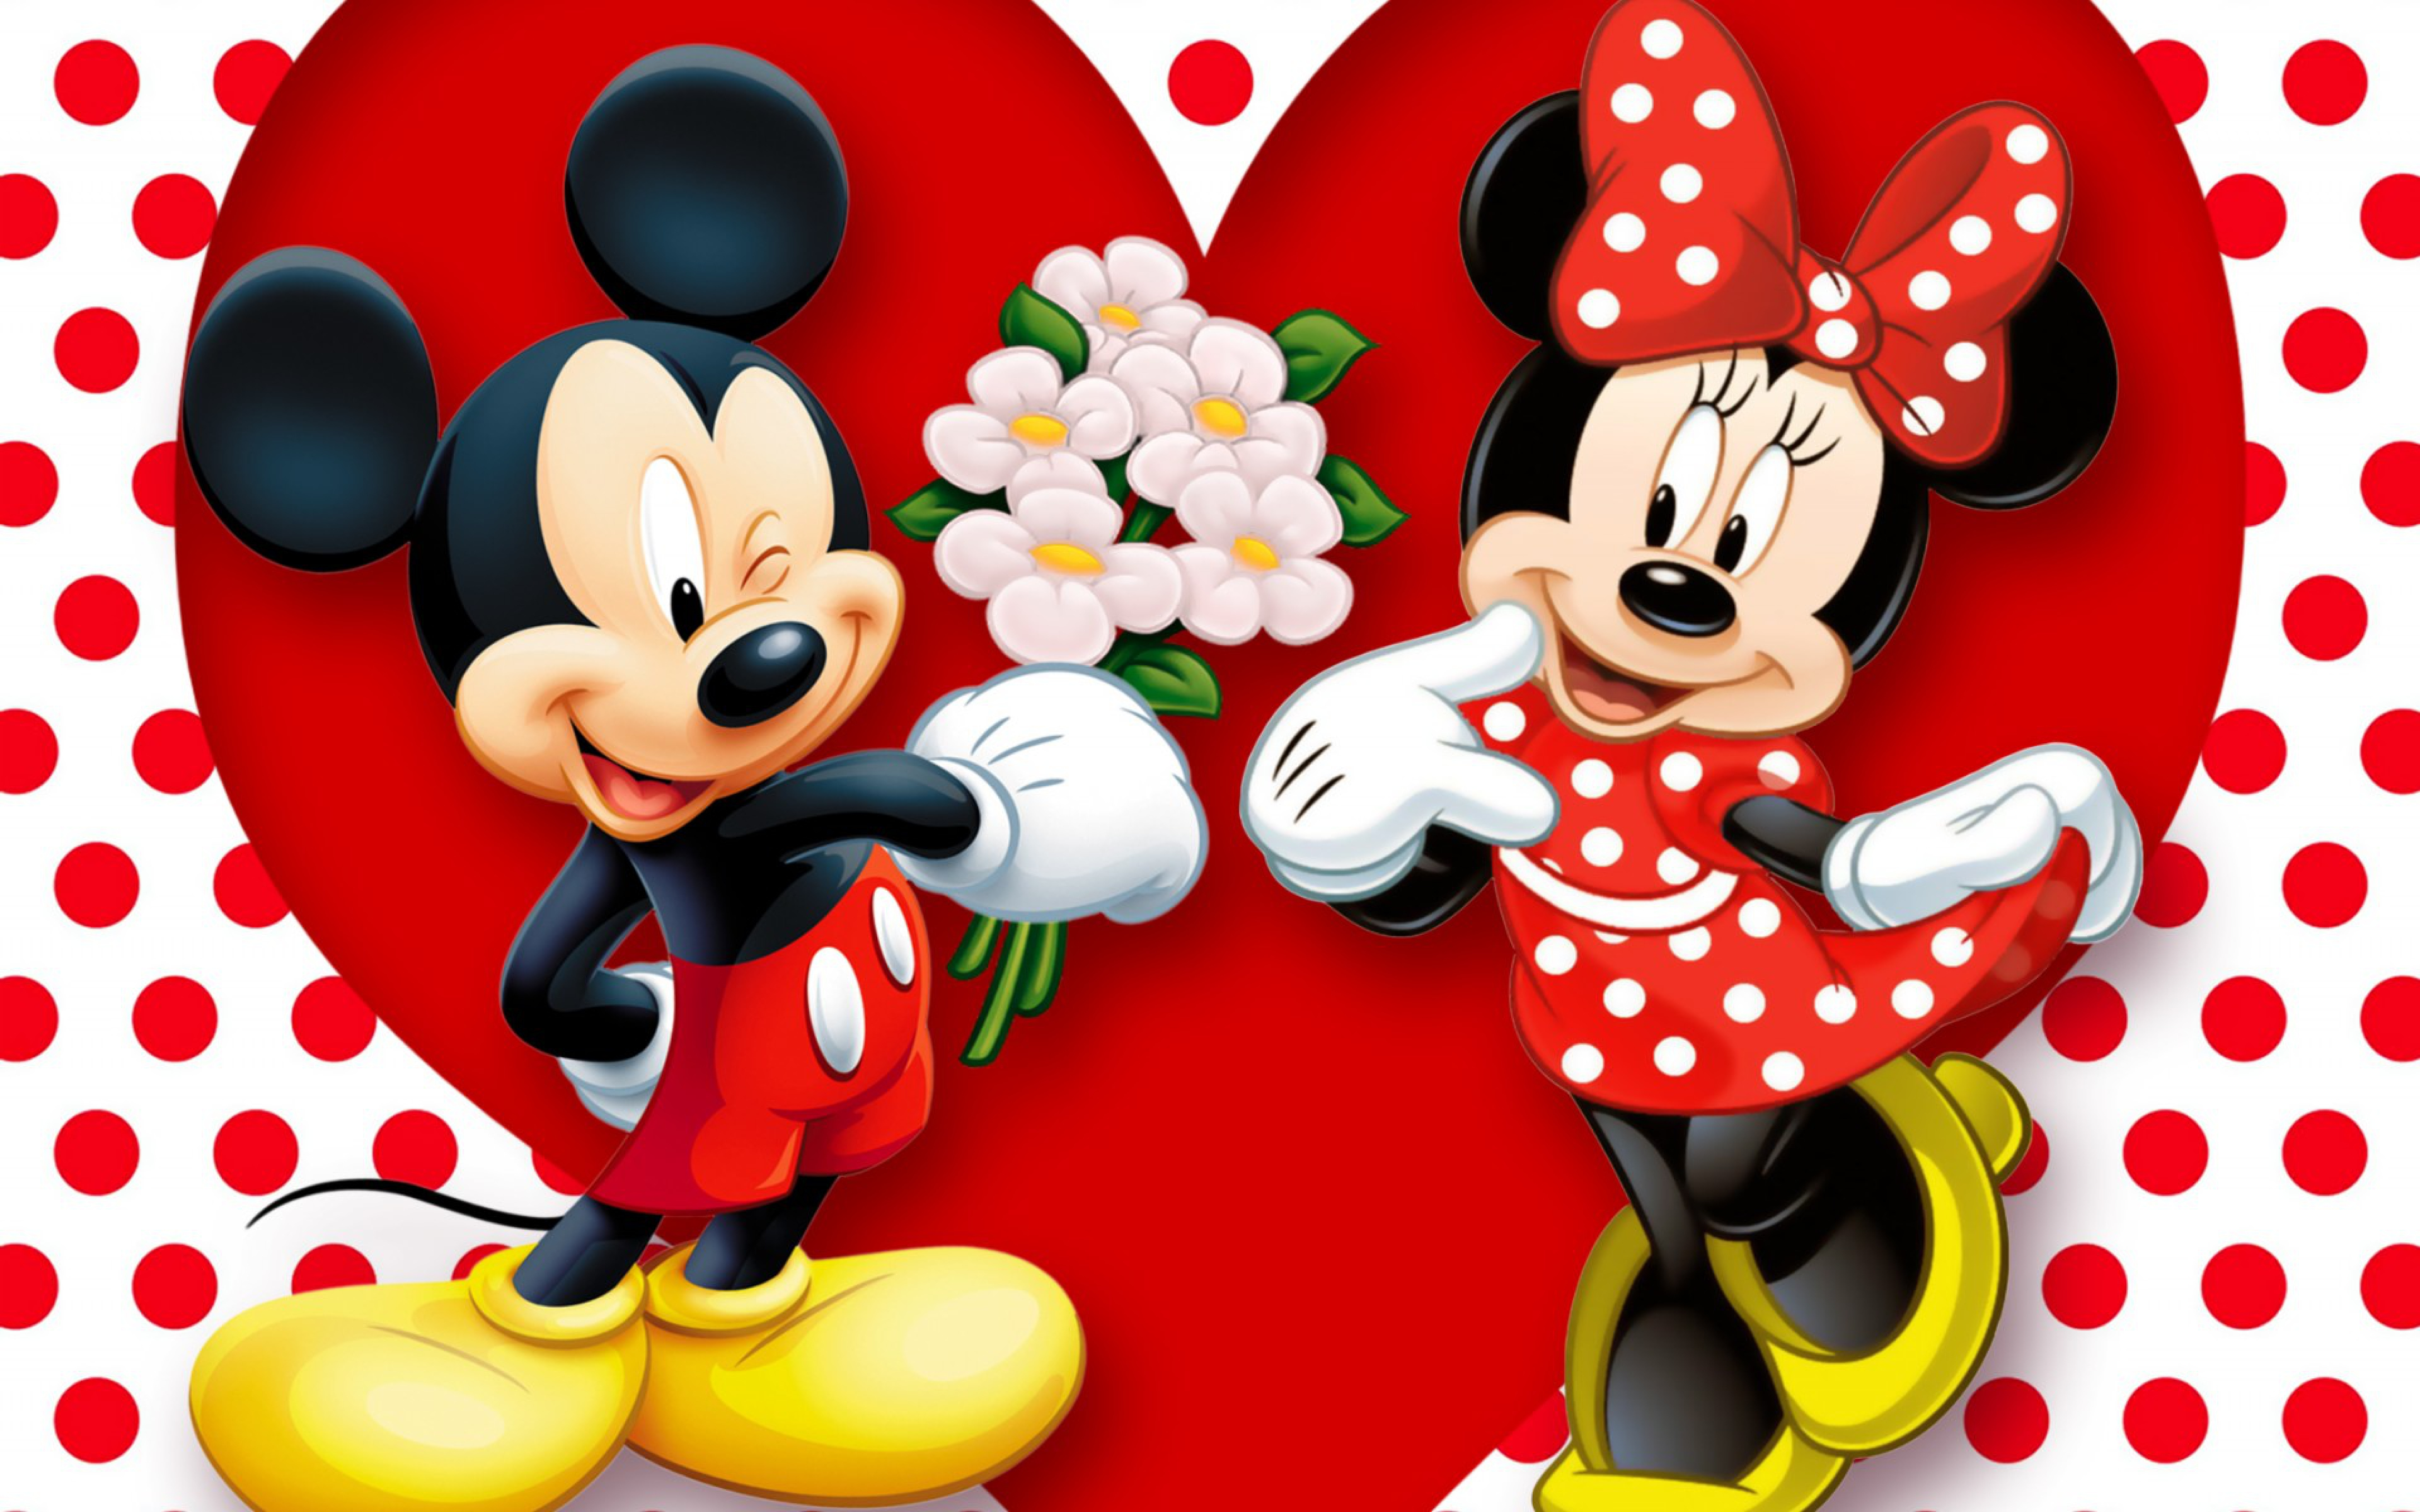 Background Mickey Mouse And Minnie Mouse Love Couple Heart Wallpaper 3840x2400